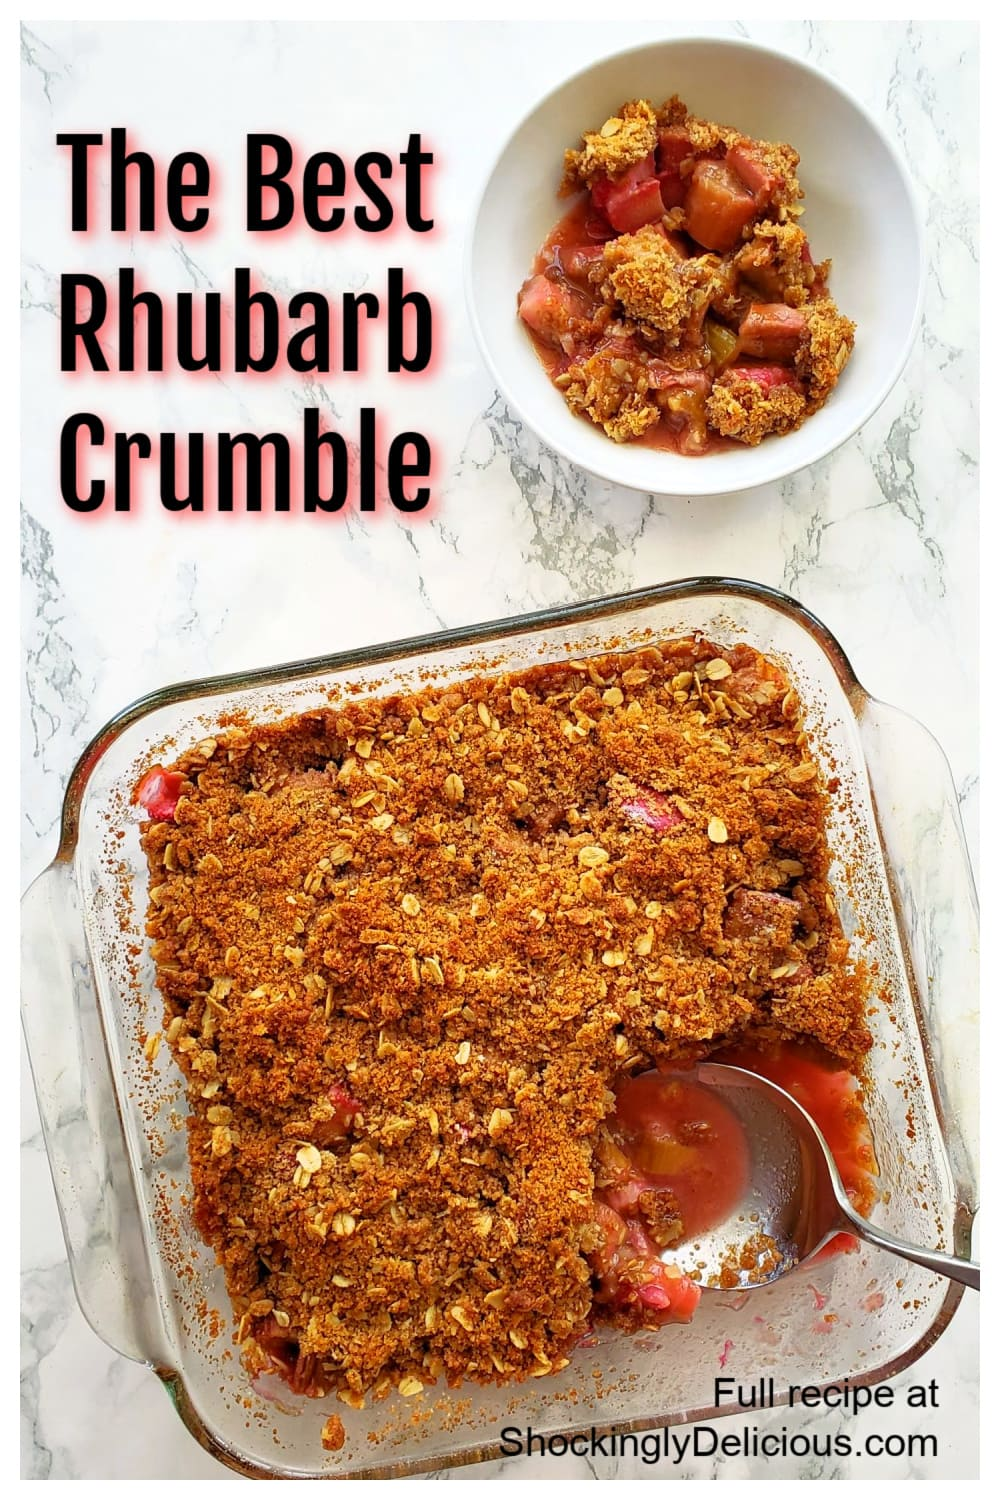 A white bowl of rhubarb crumble at the top with a glass baking dish of it at the bottom with the title superimposed over the photoom